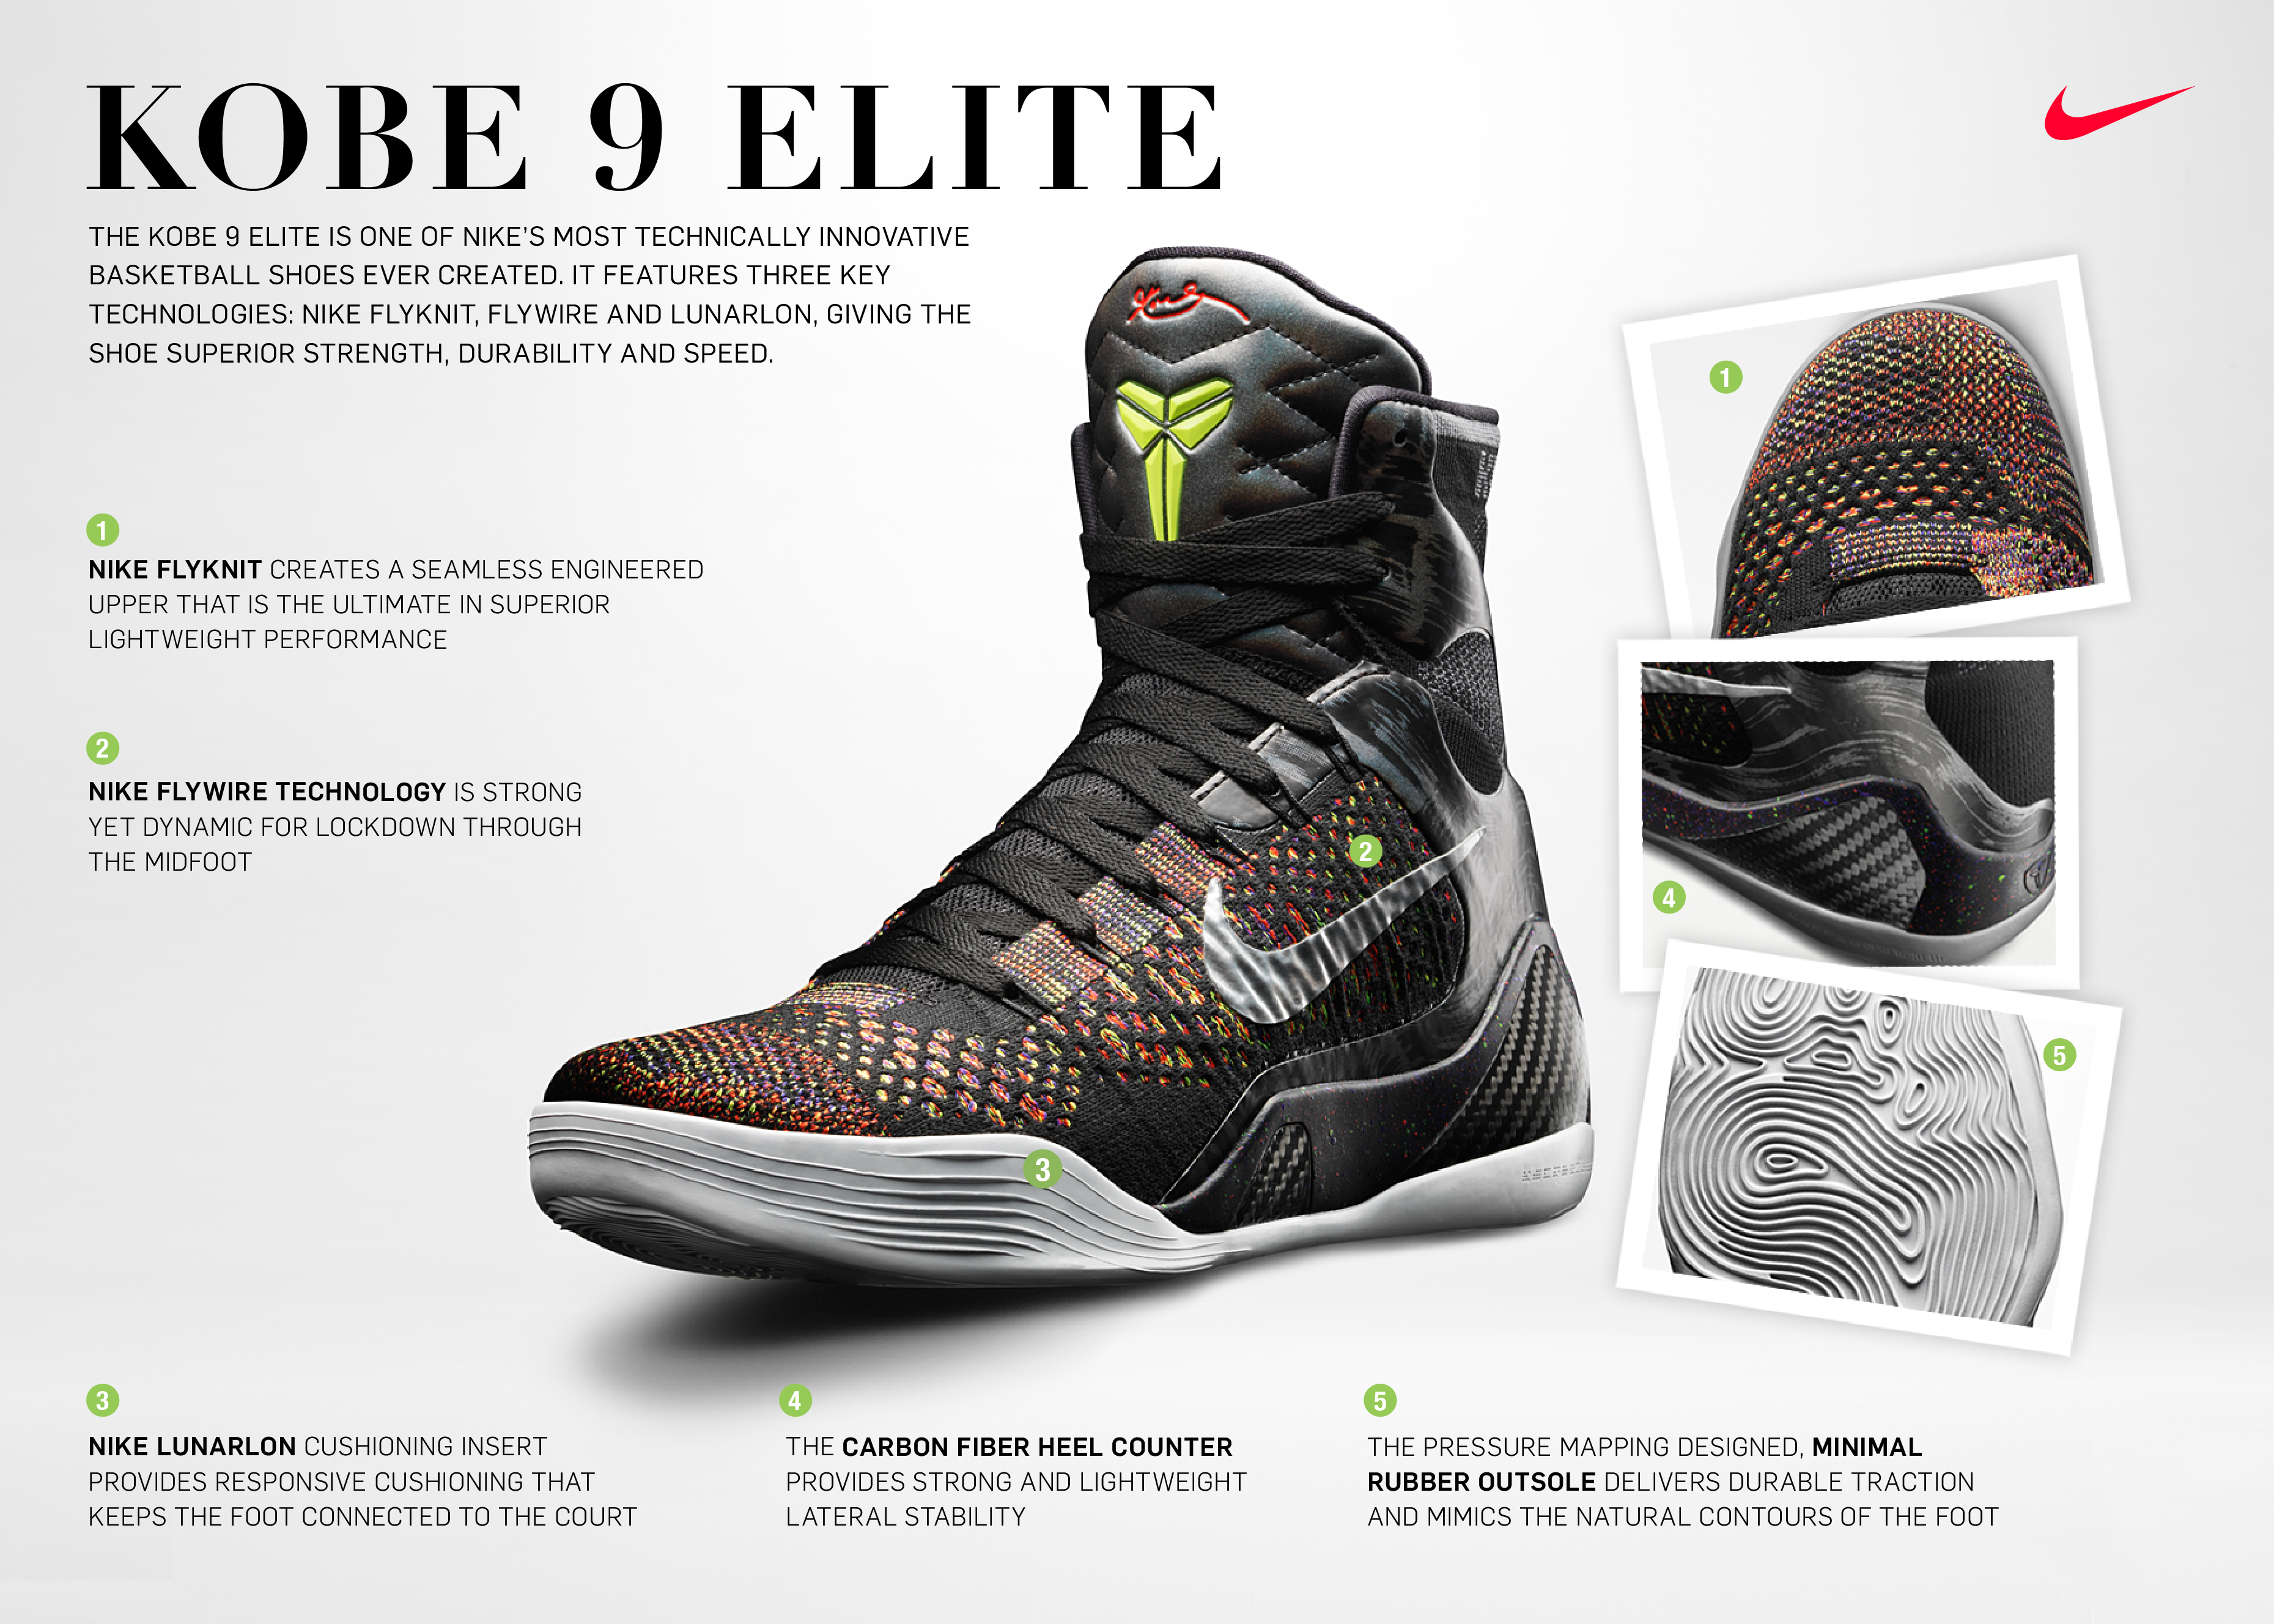 352b674f9bc Nike Redefines Basketball Footwear with the KOBE 9 Elite Featuring Nike  Flyknit - Nike News